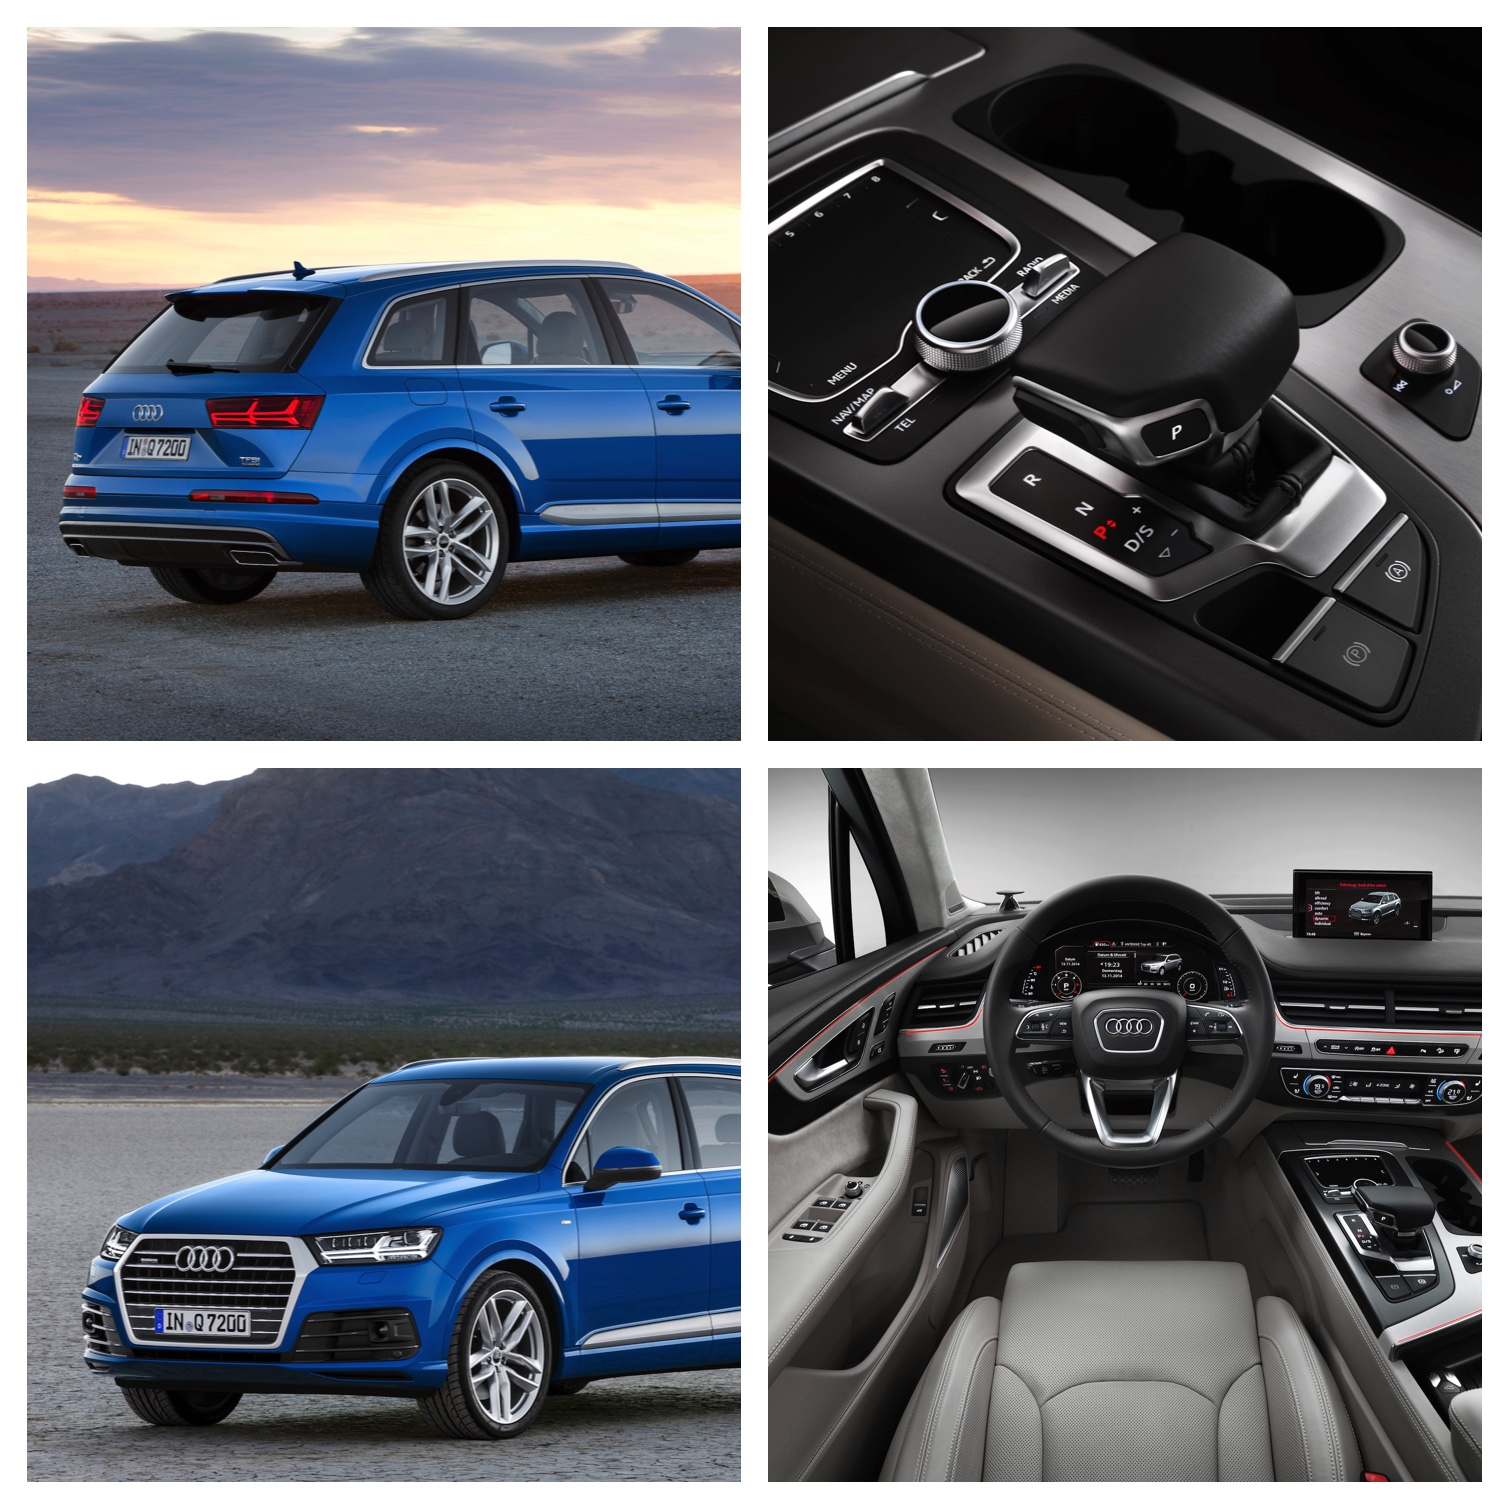 New Second Generation Audi Q7